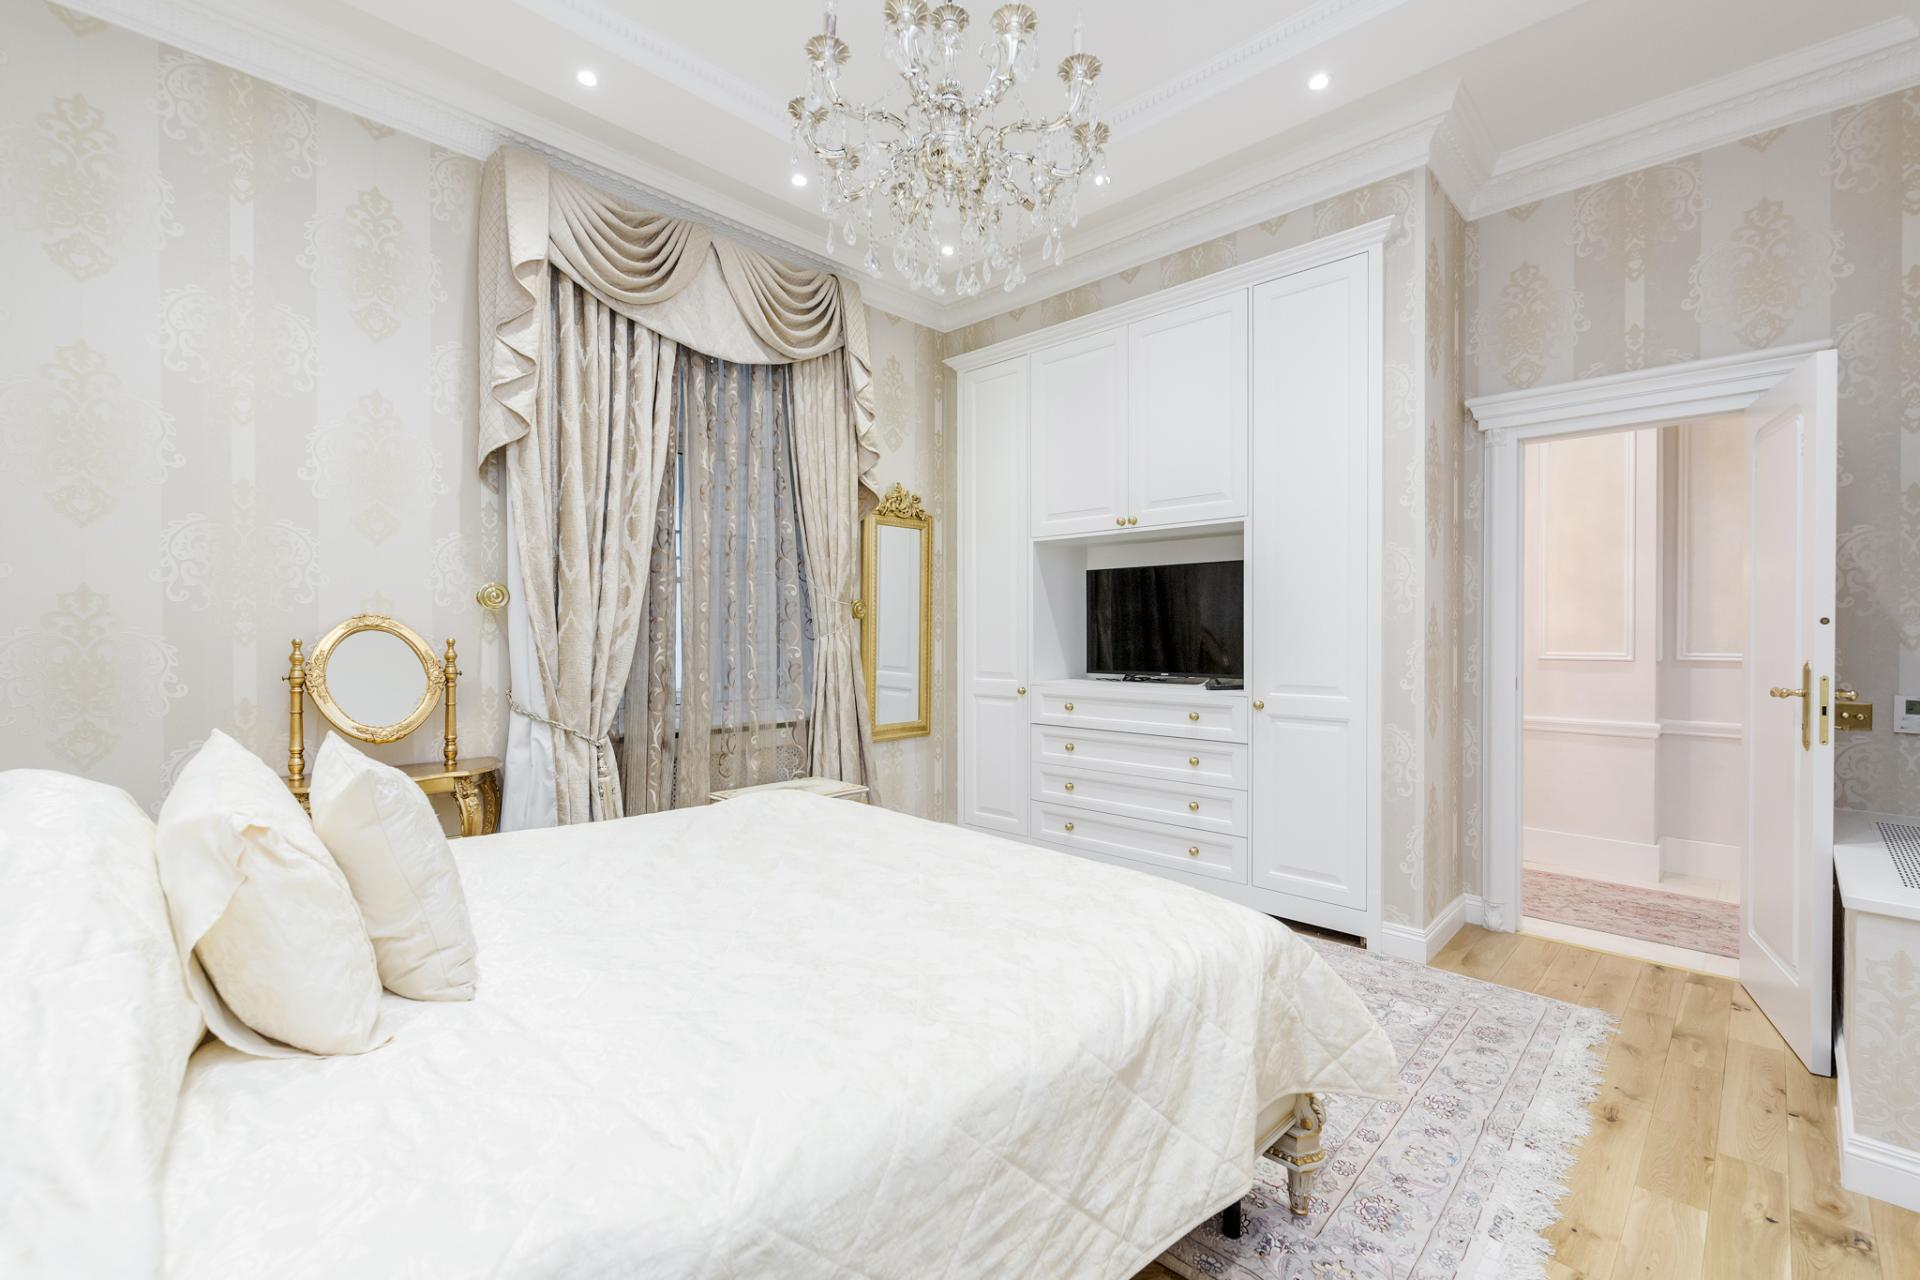 Bed at Grosvenor Square Apartment, Mayfair, London